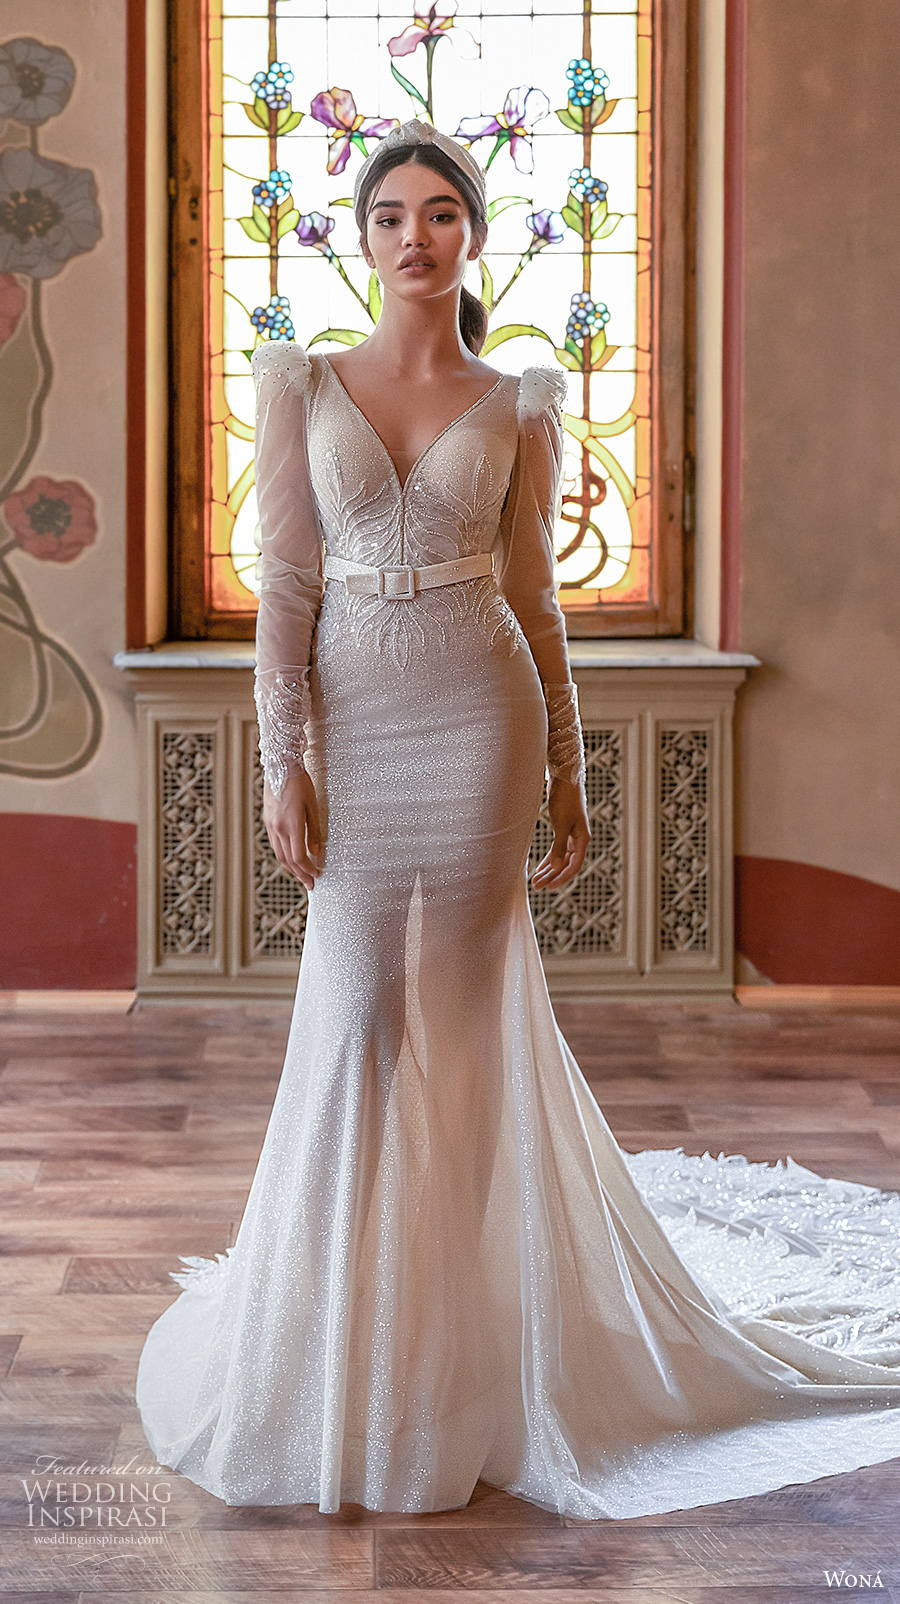 wona concept 2021 romance bridal long sleeves v neck lightly embellished bodice glamorous elgan fit and flare wedding dress keyhole back chapel train (8) mv